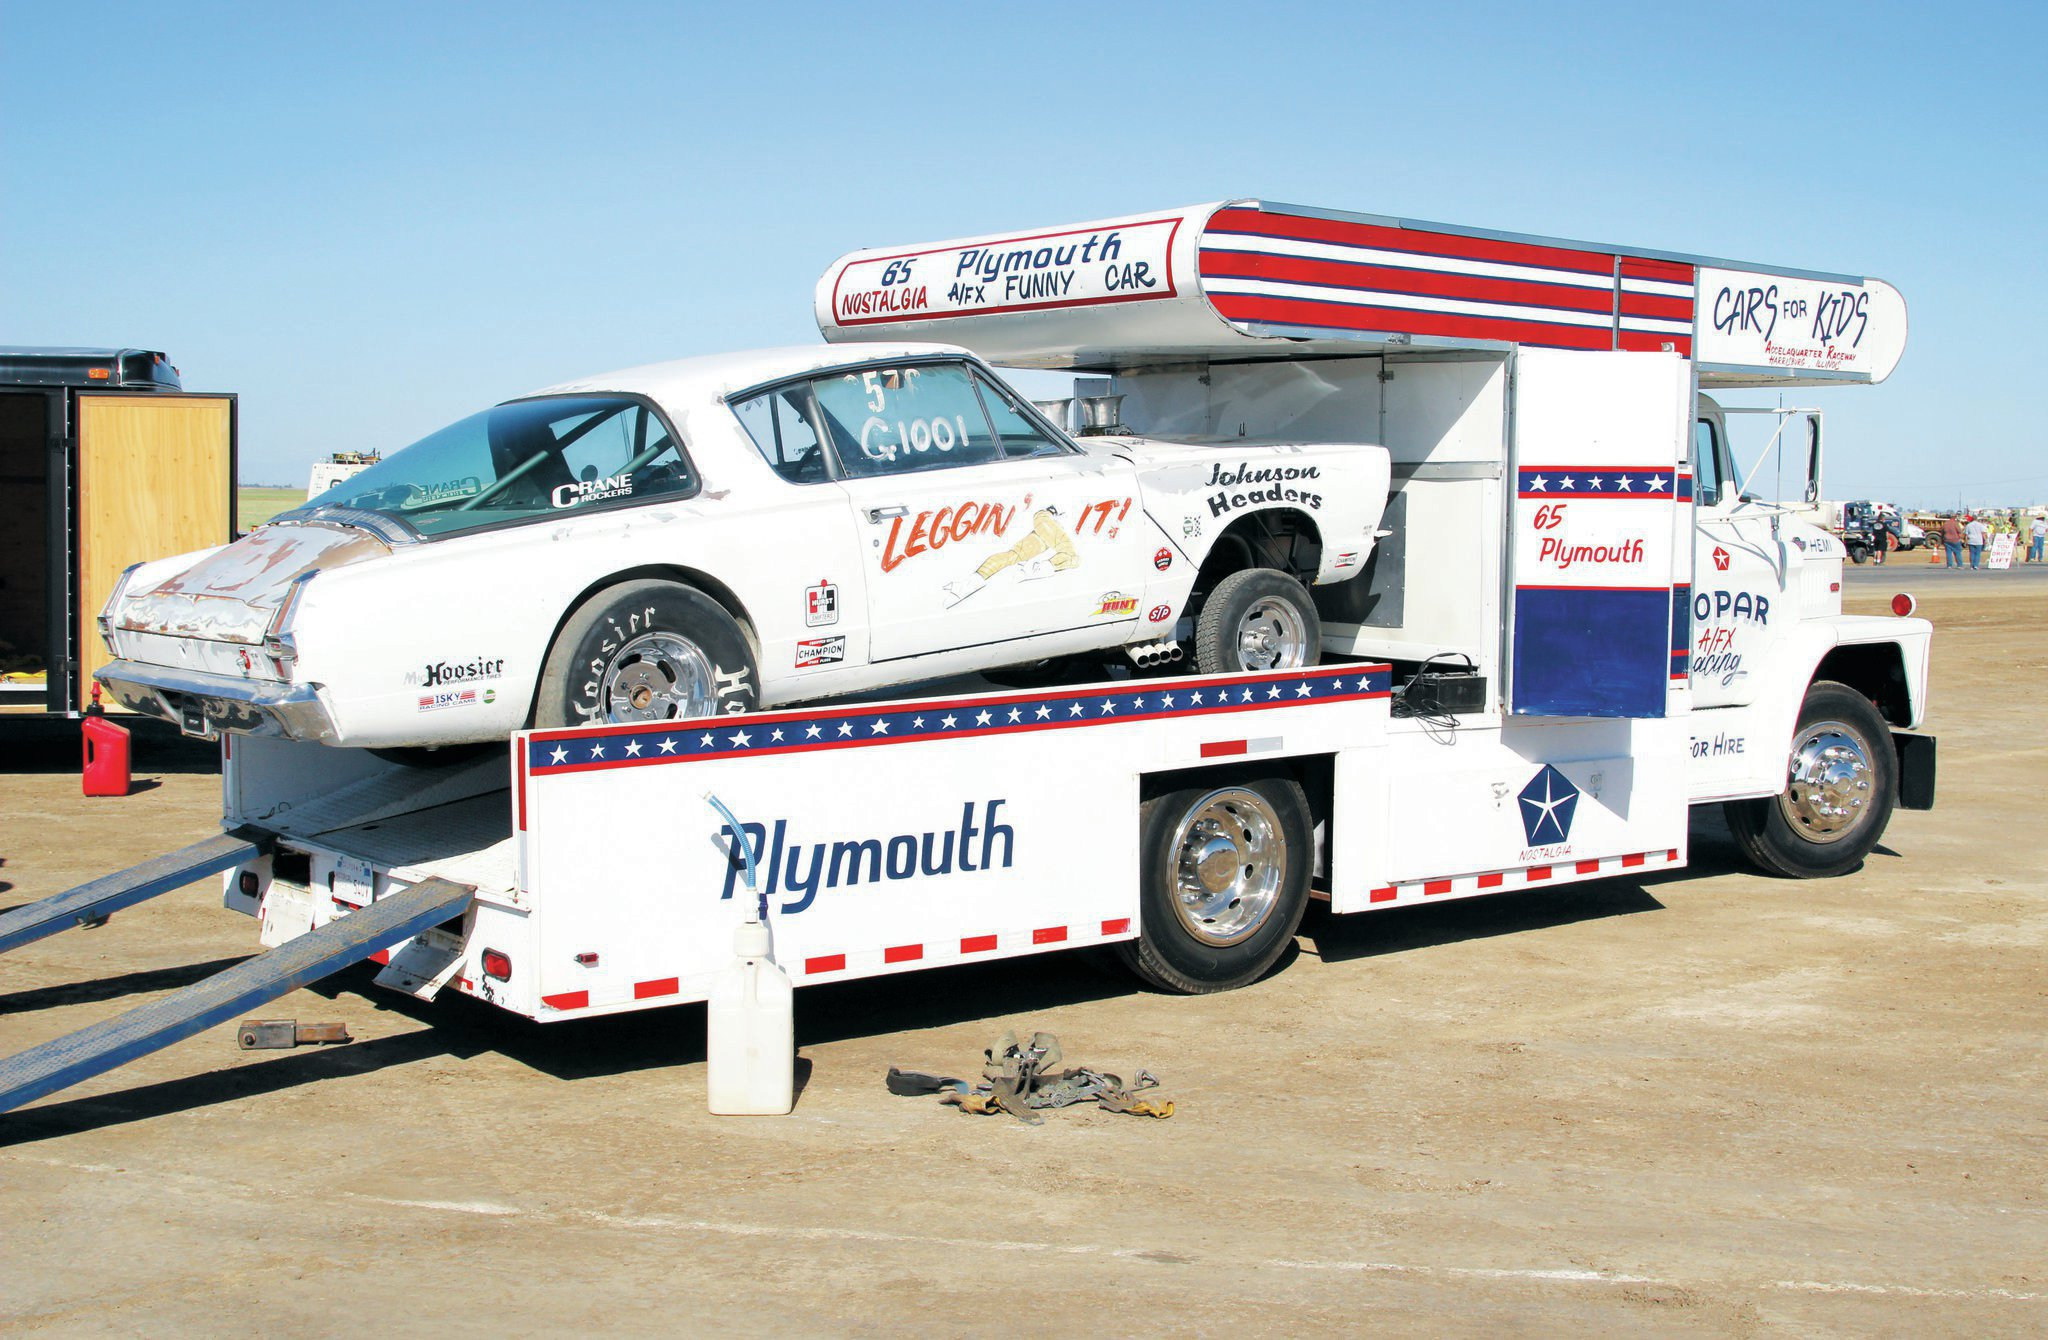 Joe Hickenbottom also brought his newly acquired ramp truck, which bears a striking resemblance to the Snake and Mongoose haulers of the '70s. Joe already owned the '65 'Cuda gasser, so the signage on the truck was a perfect match to haul his car to the races. Eagle Field was the maiden voyage for the truck, which is powered by a 318 Polysphere engine with a two-barrel Holly carburetor.